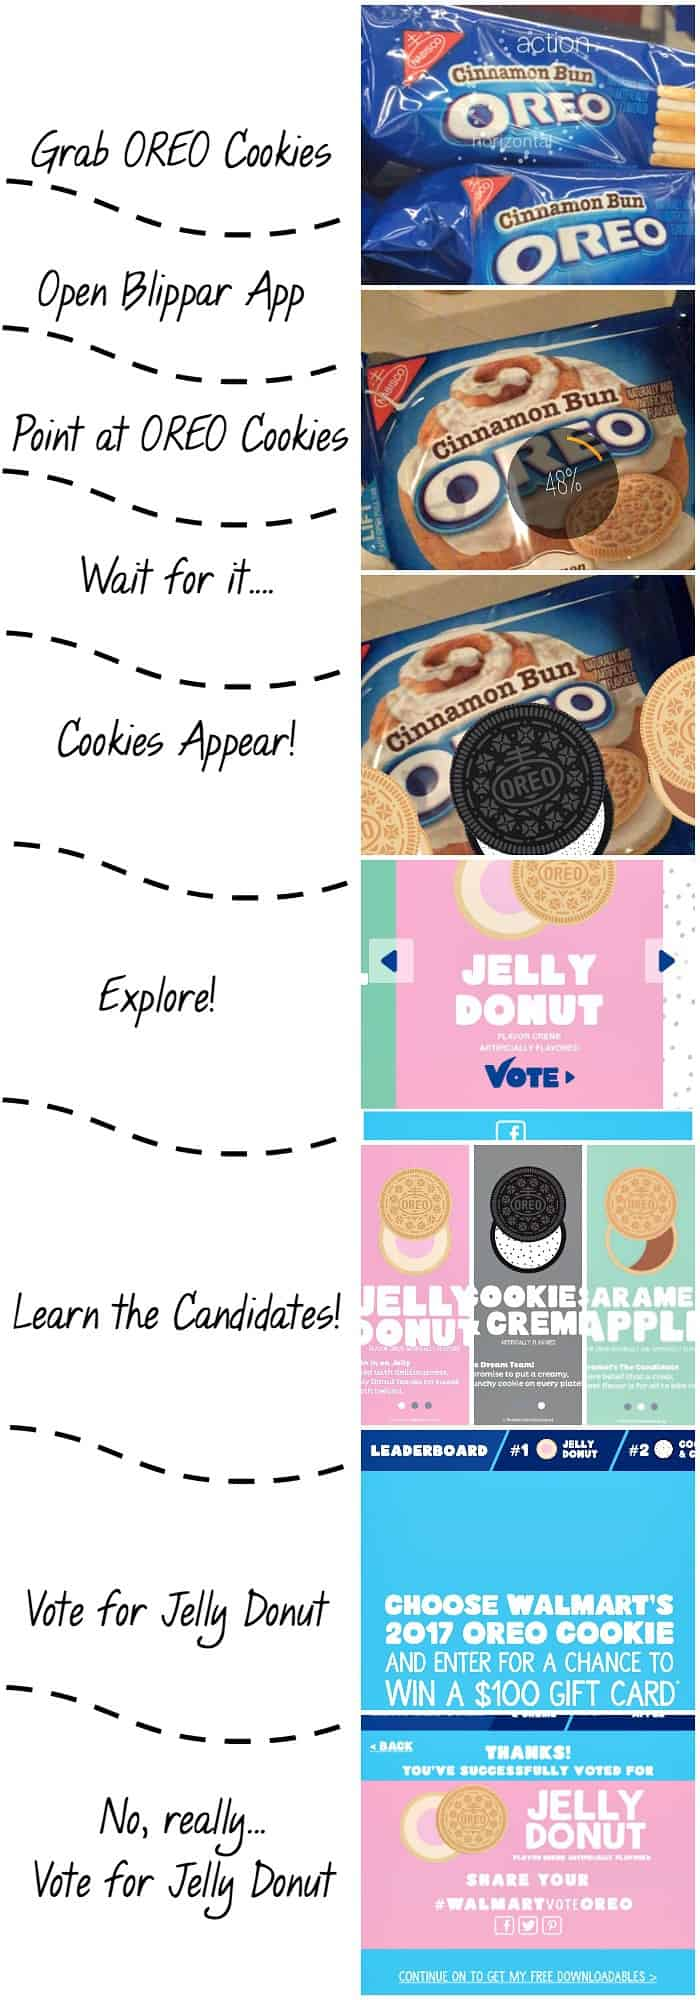 Blippar App tutorial Vote for Jelly Donut tutorial